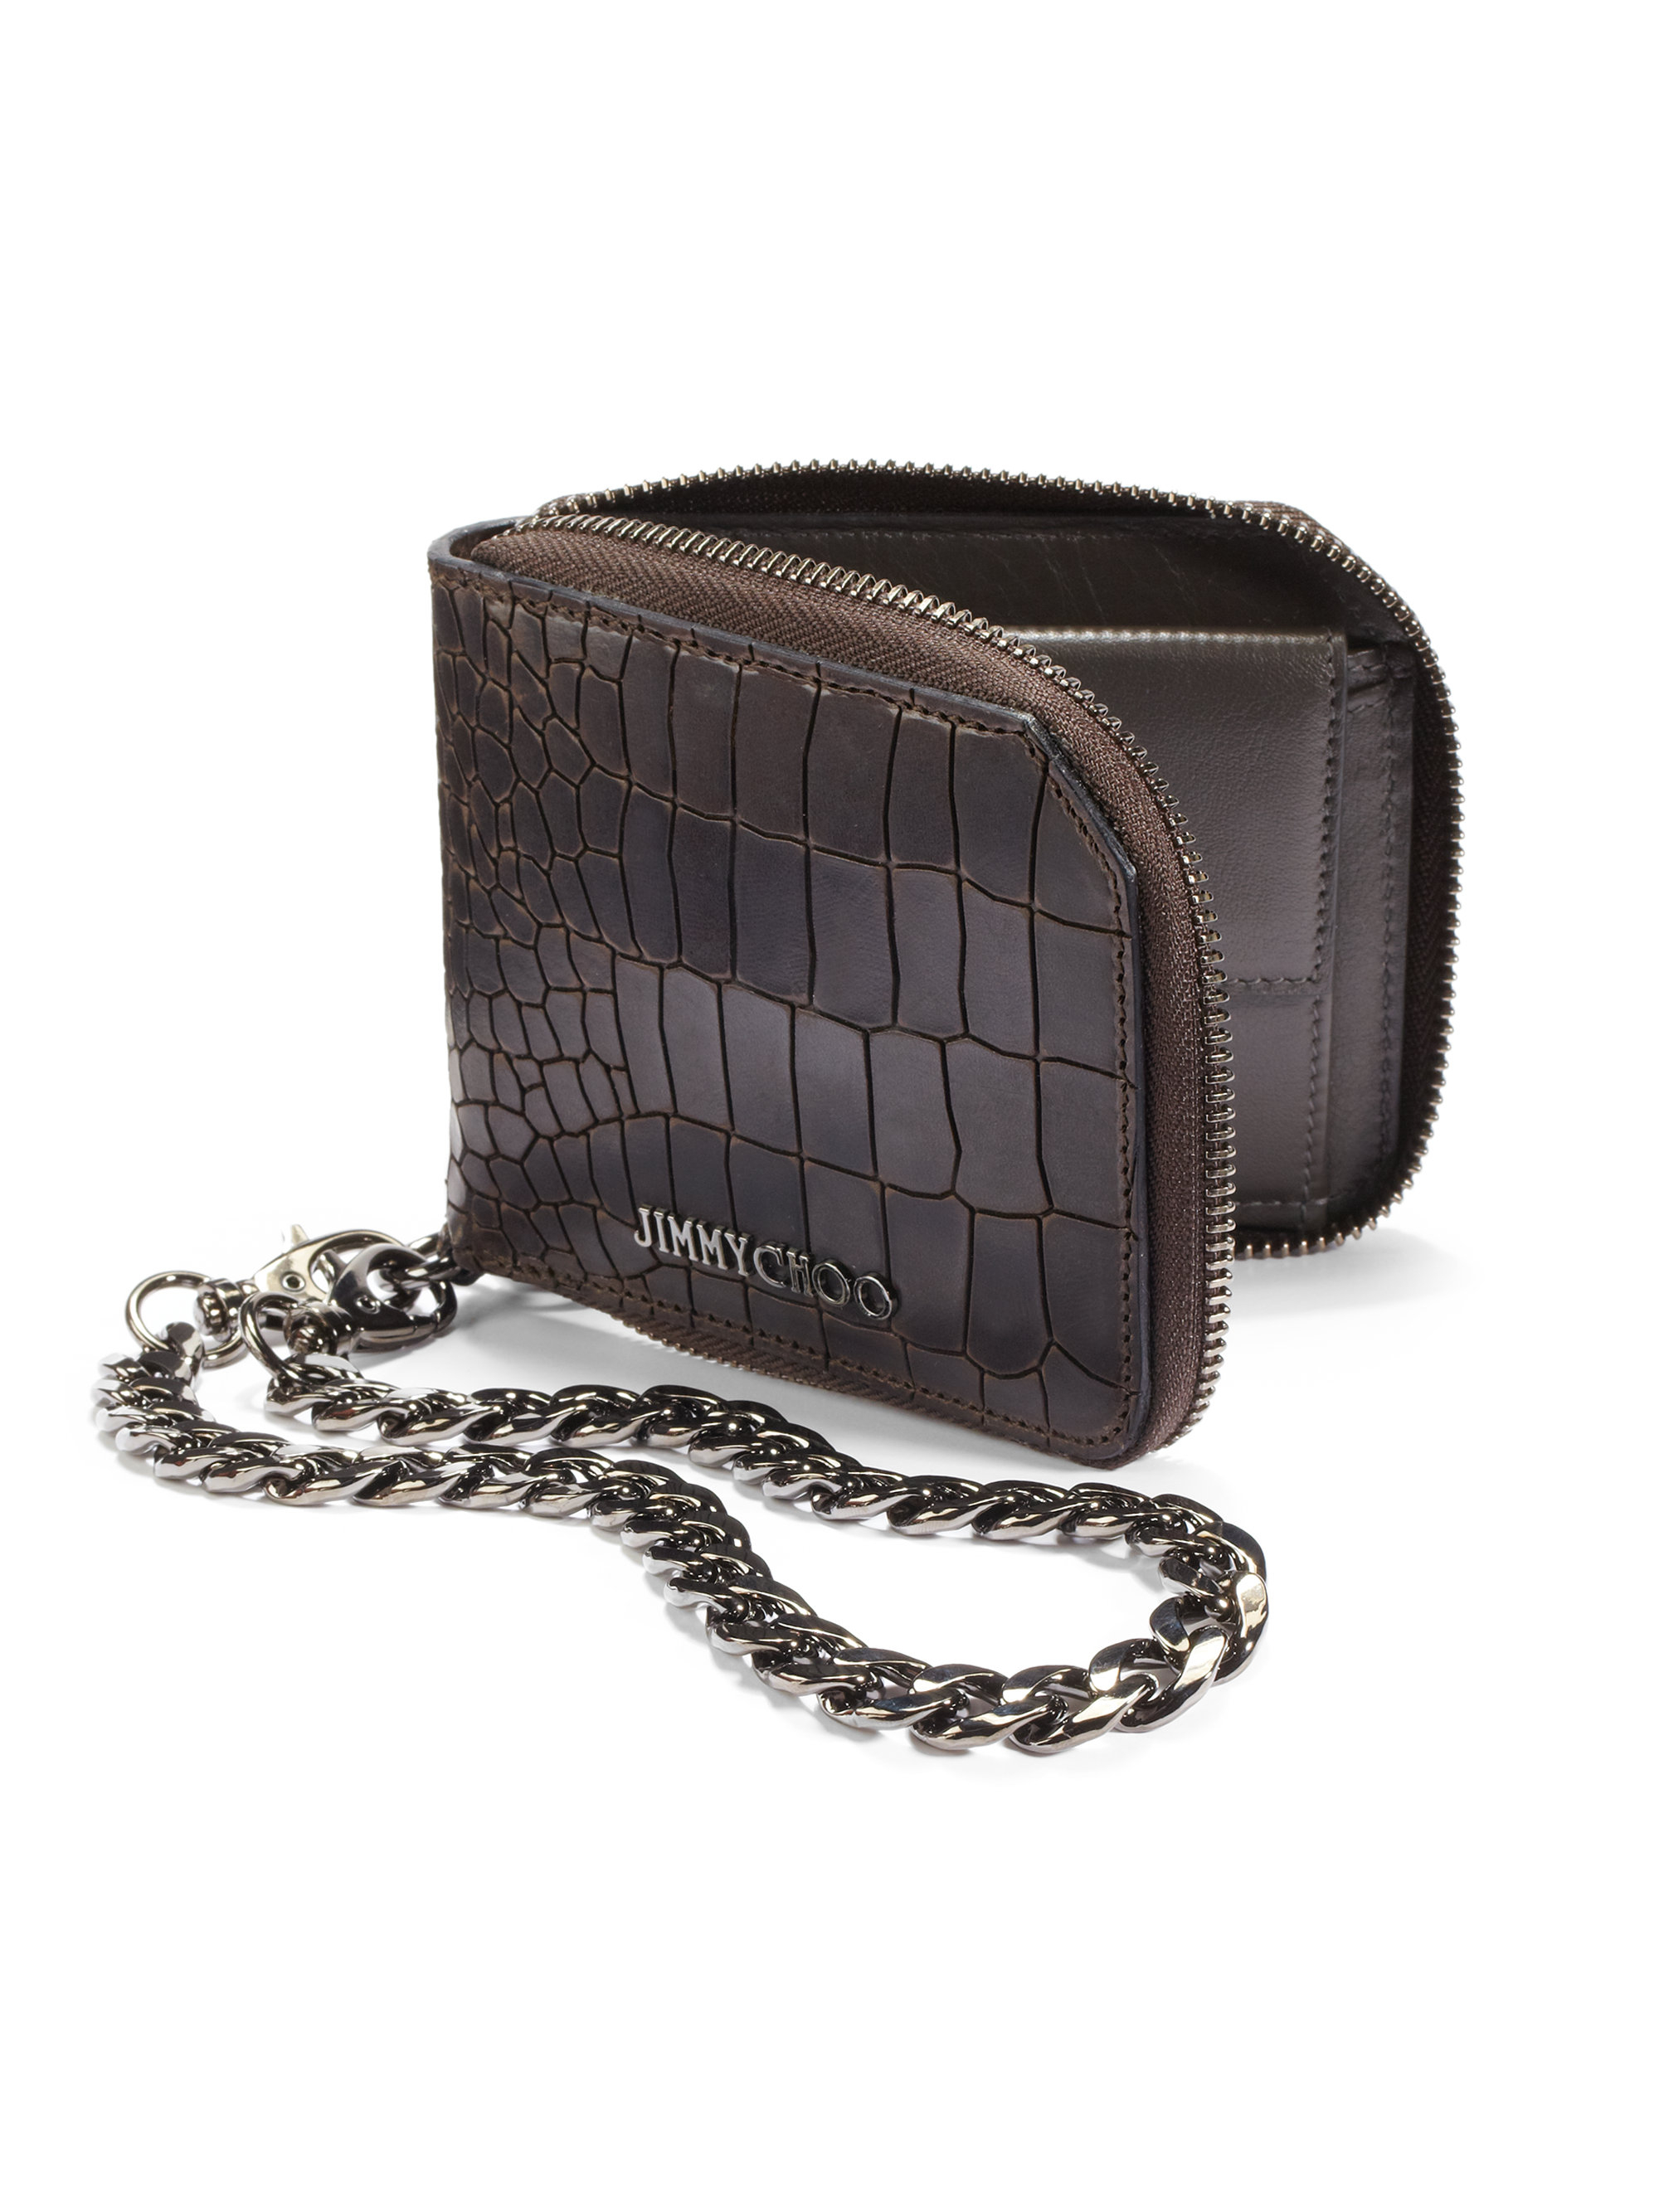 c5d3a2ffd02 Lyst Jimmy Choo Croc Embossed Chain Wallet In Brown For Men